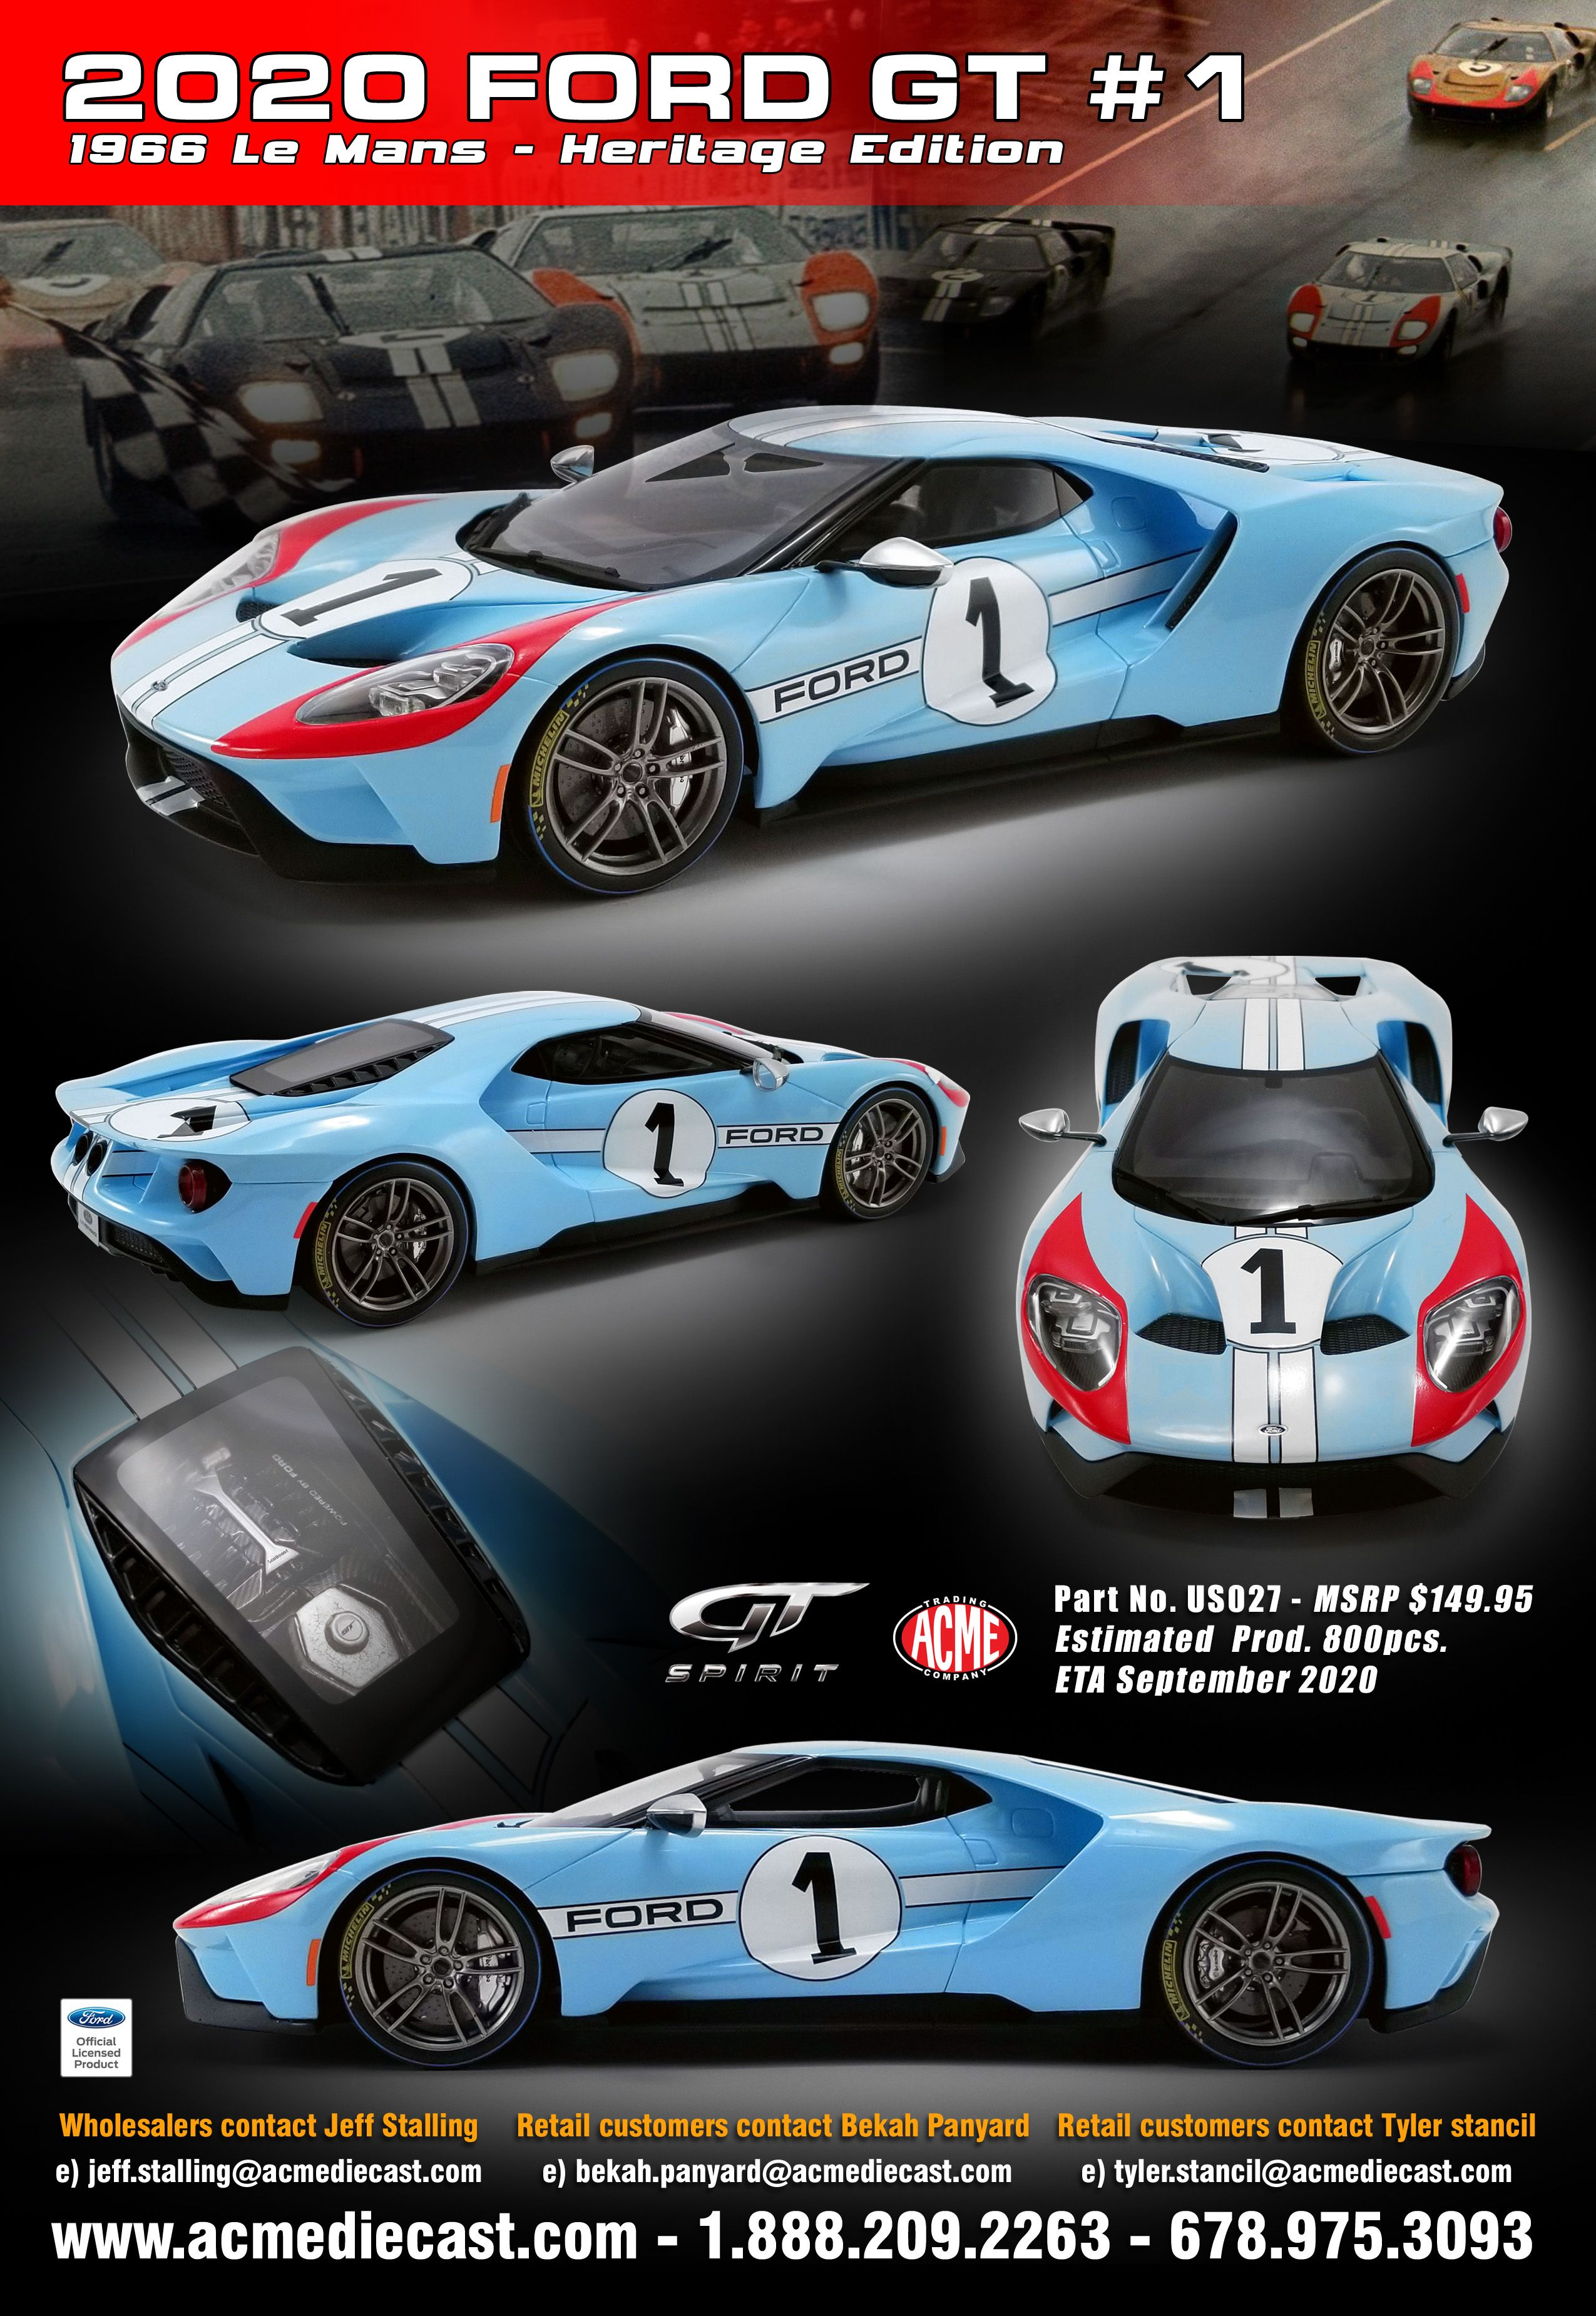 24++ Ford gt lemans 2020 ideas in 2021